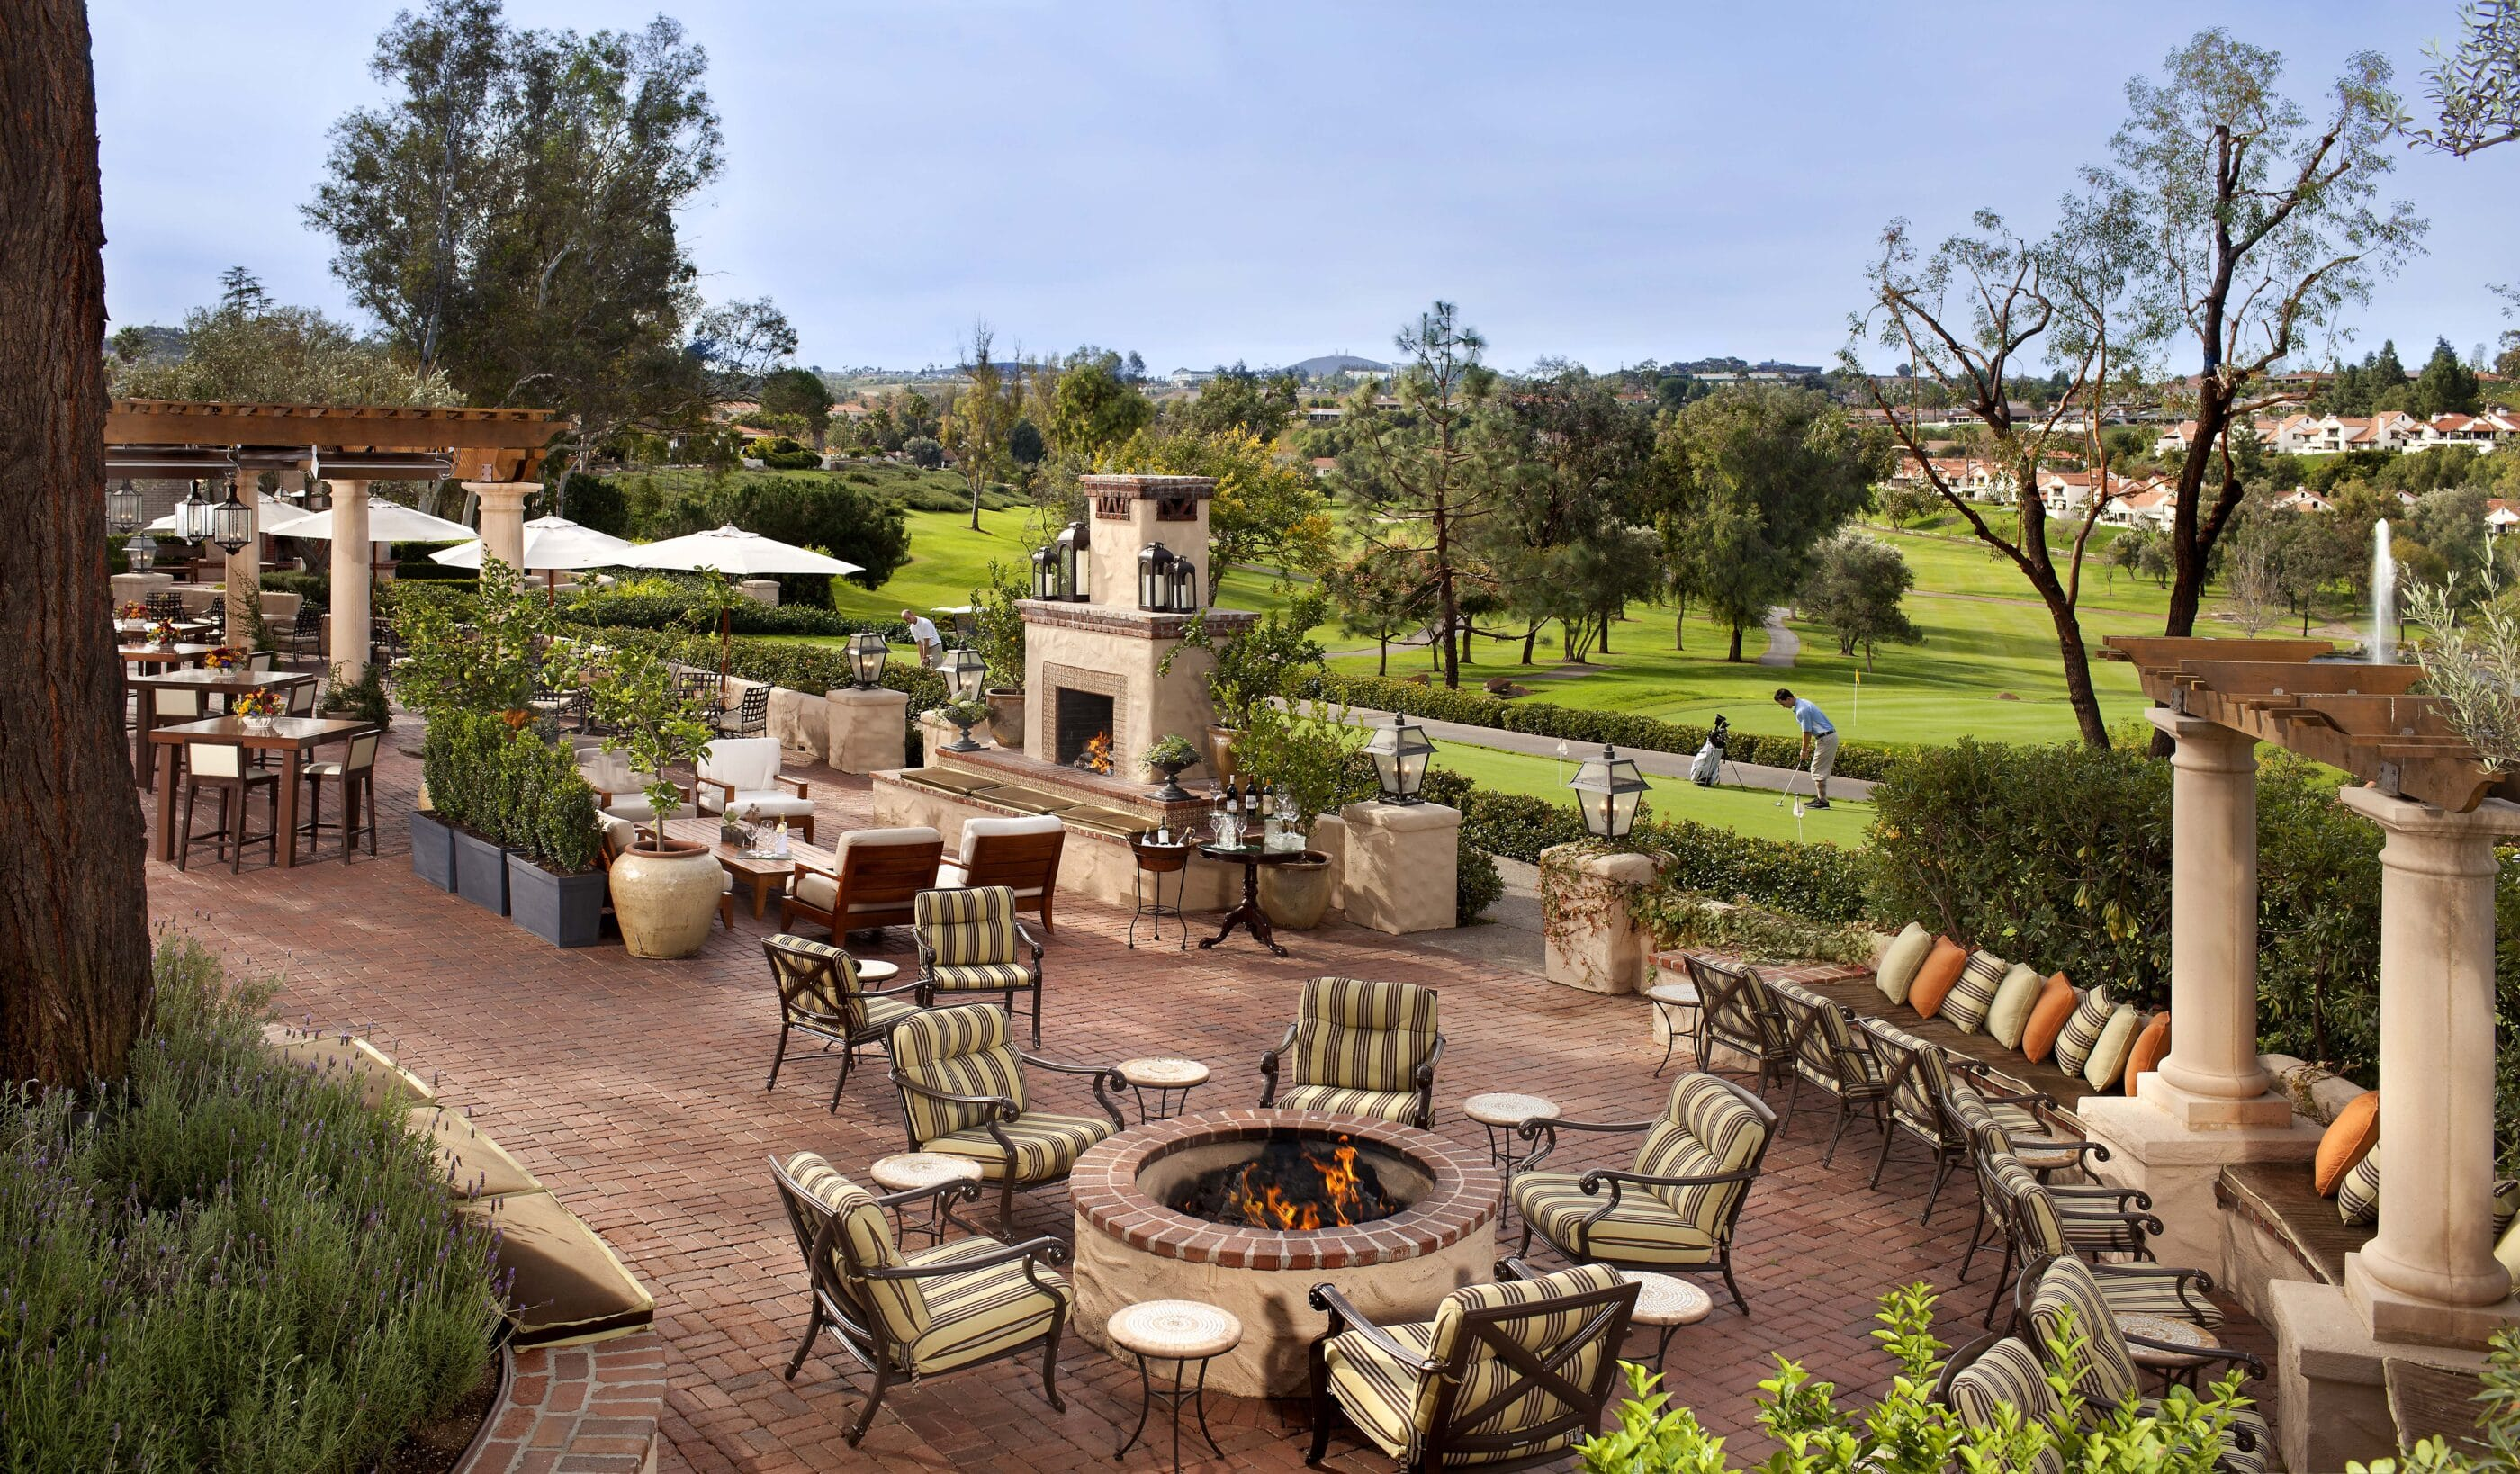 The outdoor patio and fireplace at Veranda restaurant